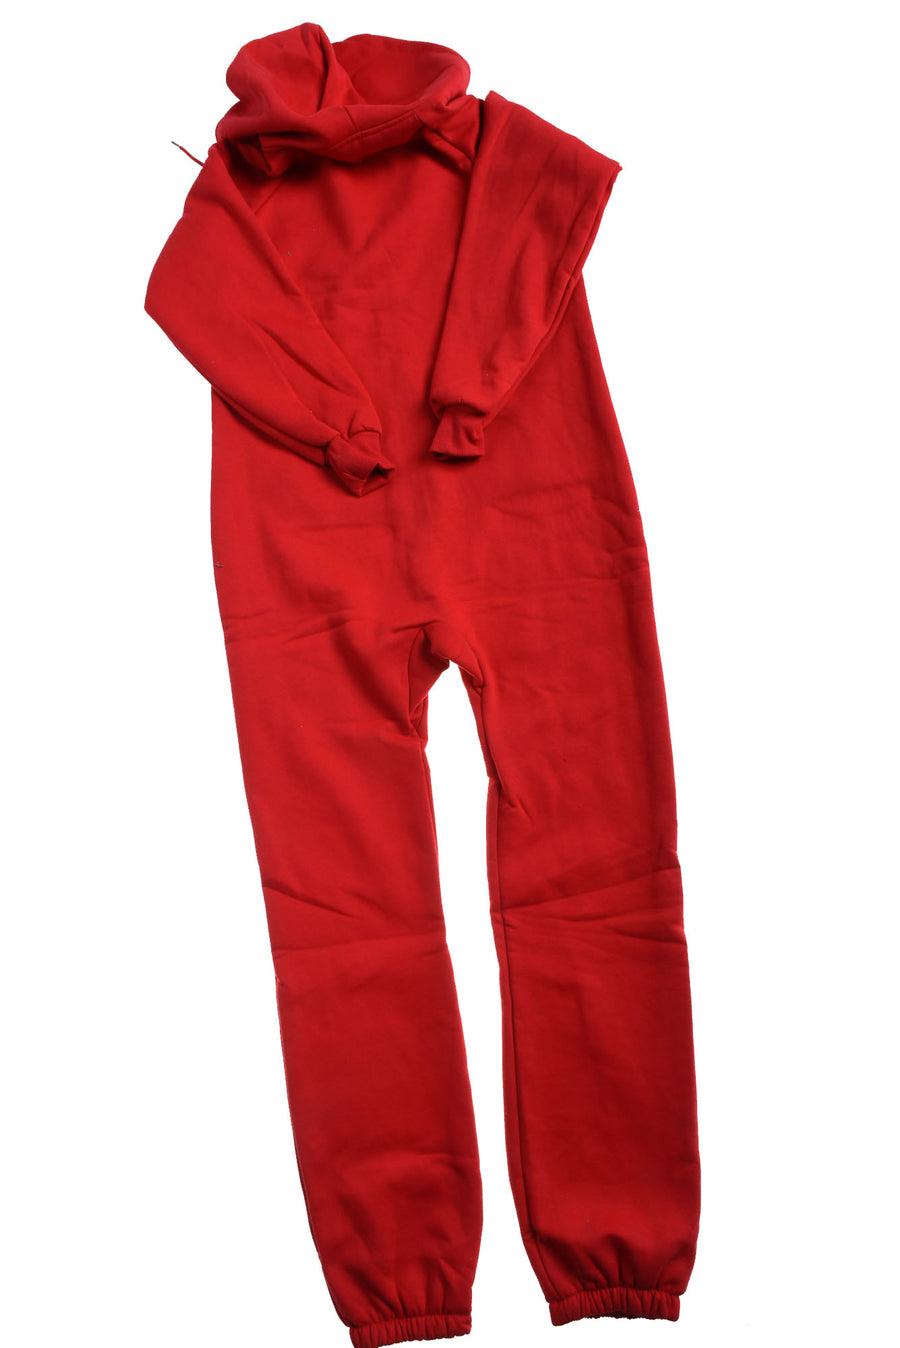 NEW Pajoggers Pajama Joggers Red X-Small